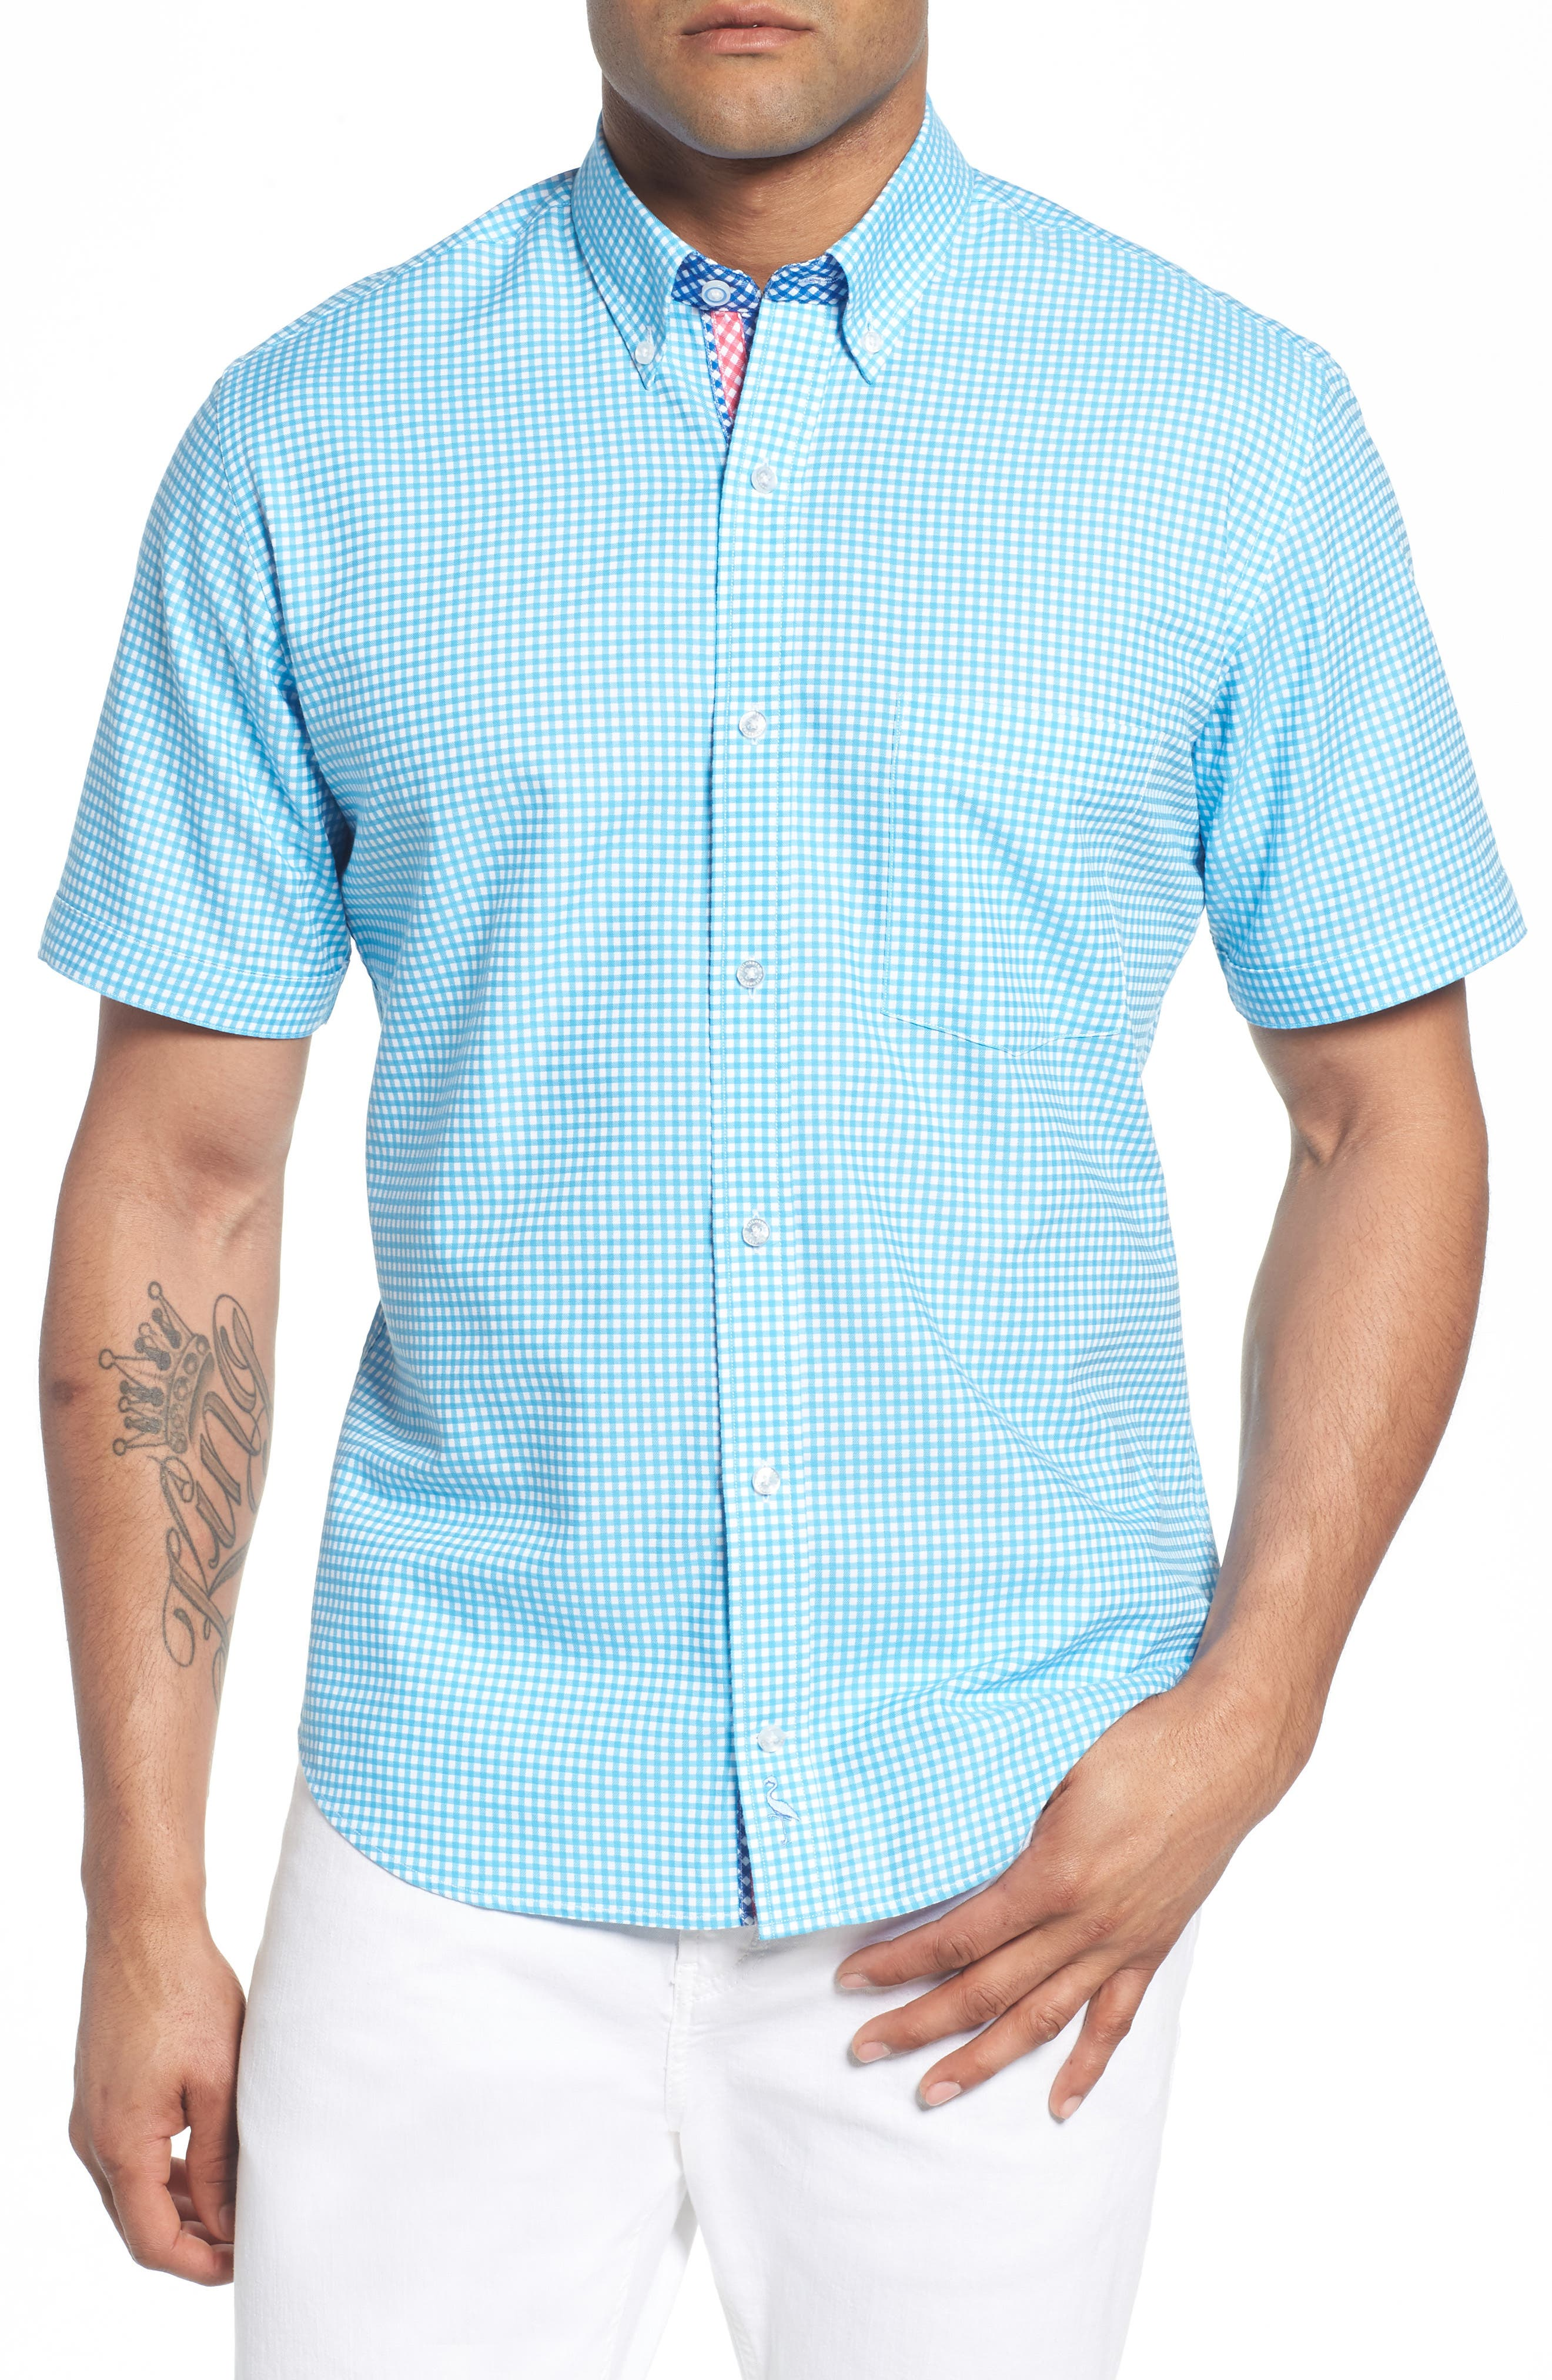 Aden Regular Fit Sport Shirt,                             Main thumbnail 1, color,                             465